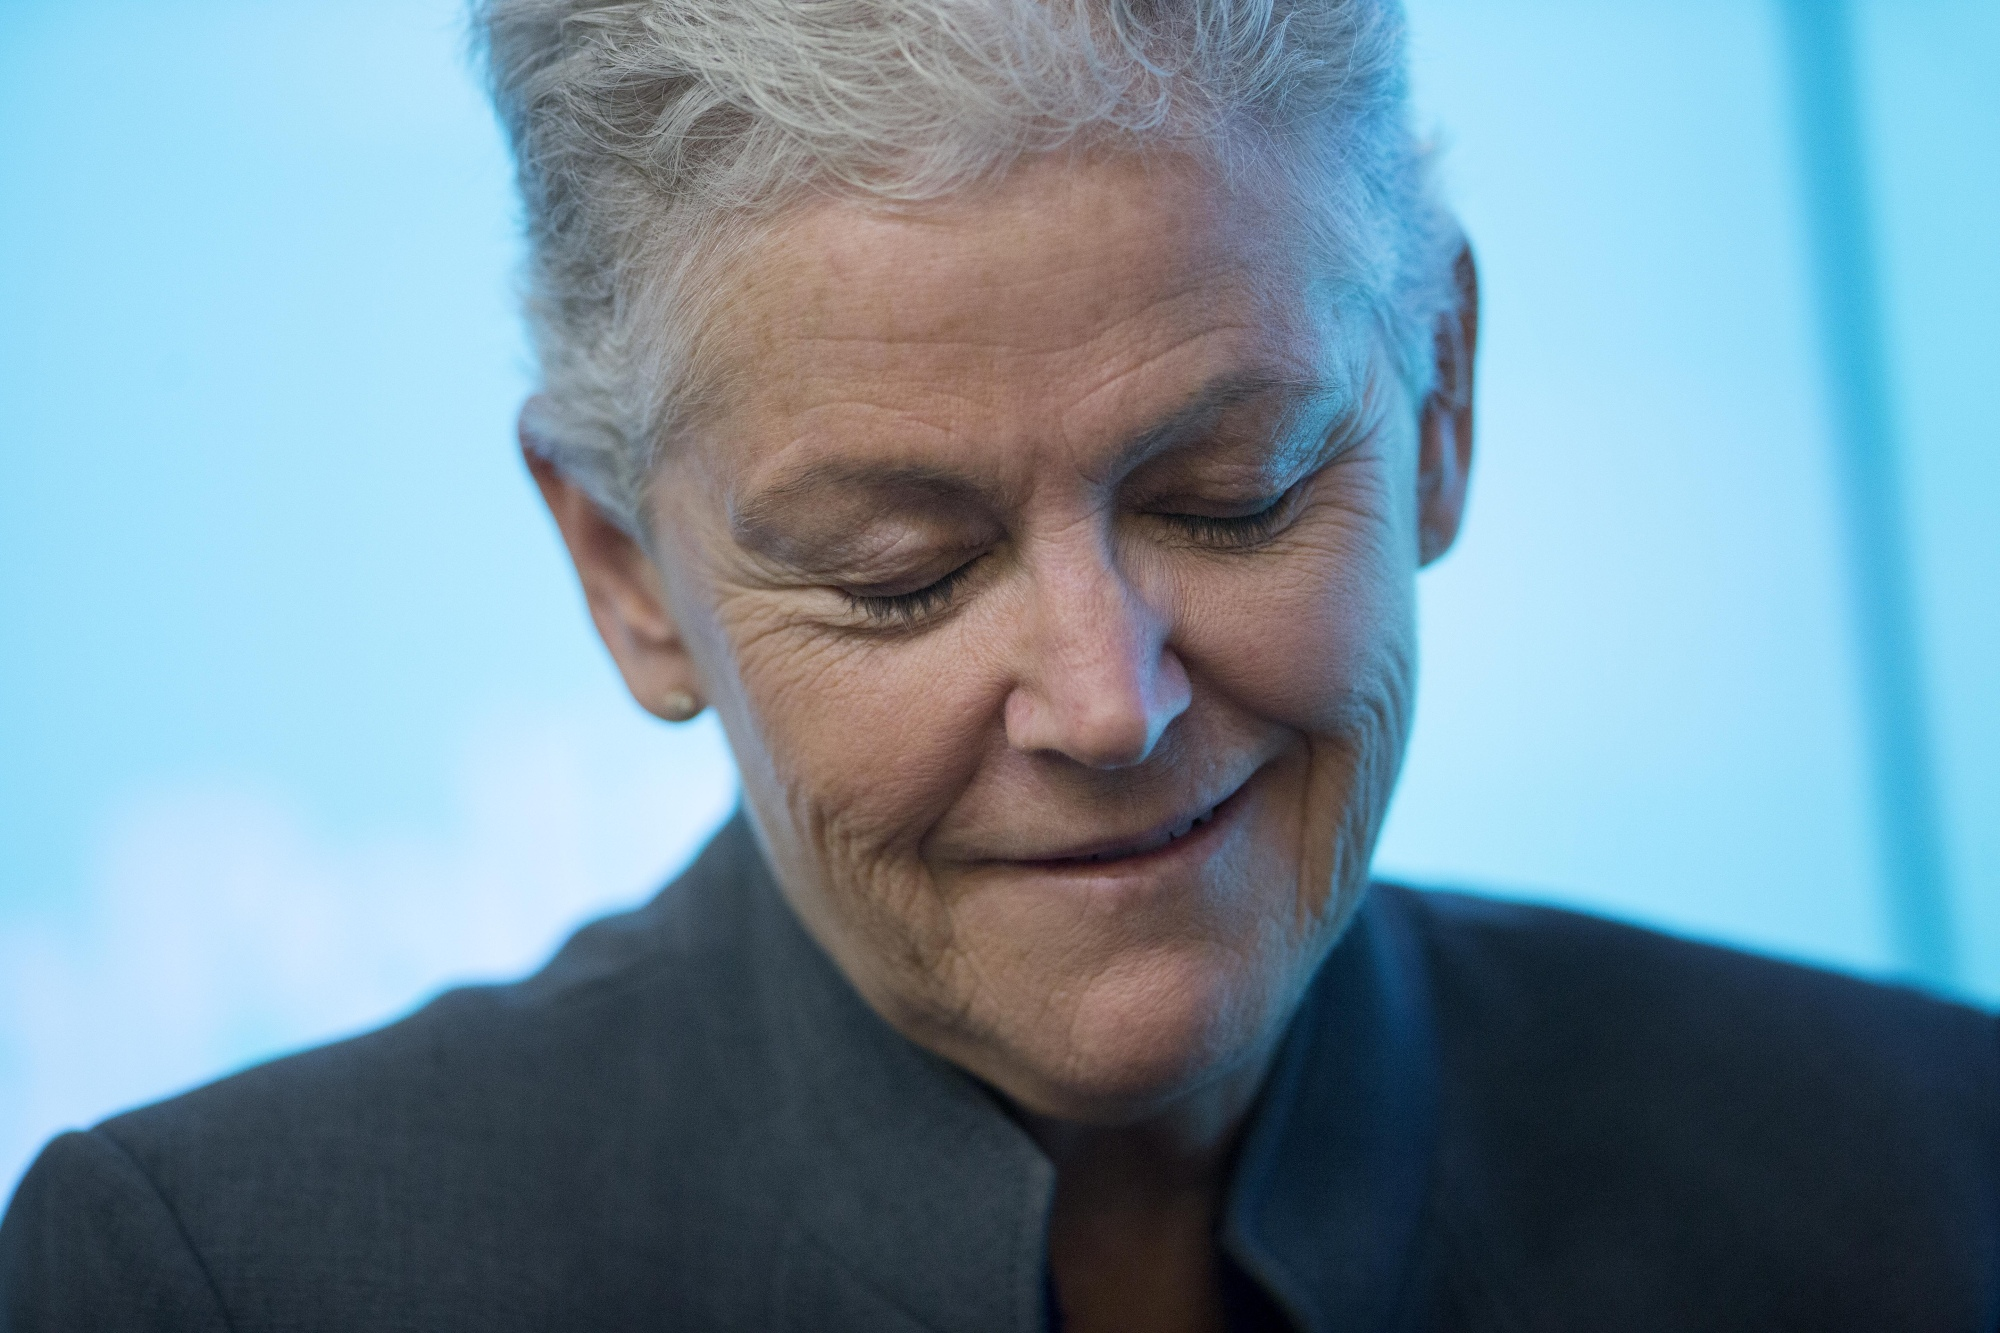 Gina McCarthy during a Bloomberg Politics discussion in Washington in 2015. The EPA administrator at the time spoke about how President Obama's Clean Power Plan would survive even if a Republican president were elected in 2016.